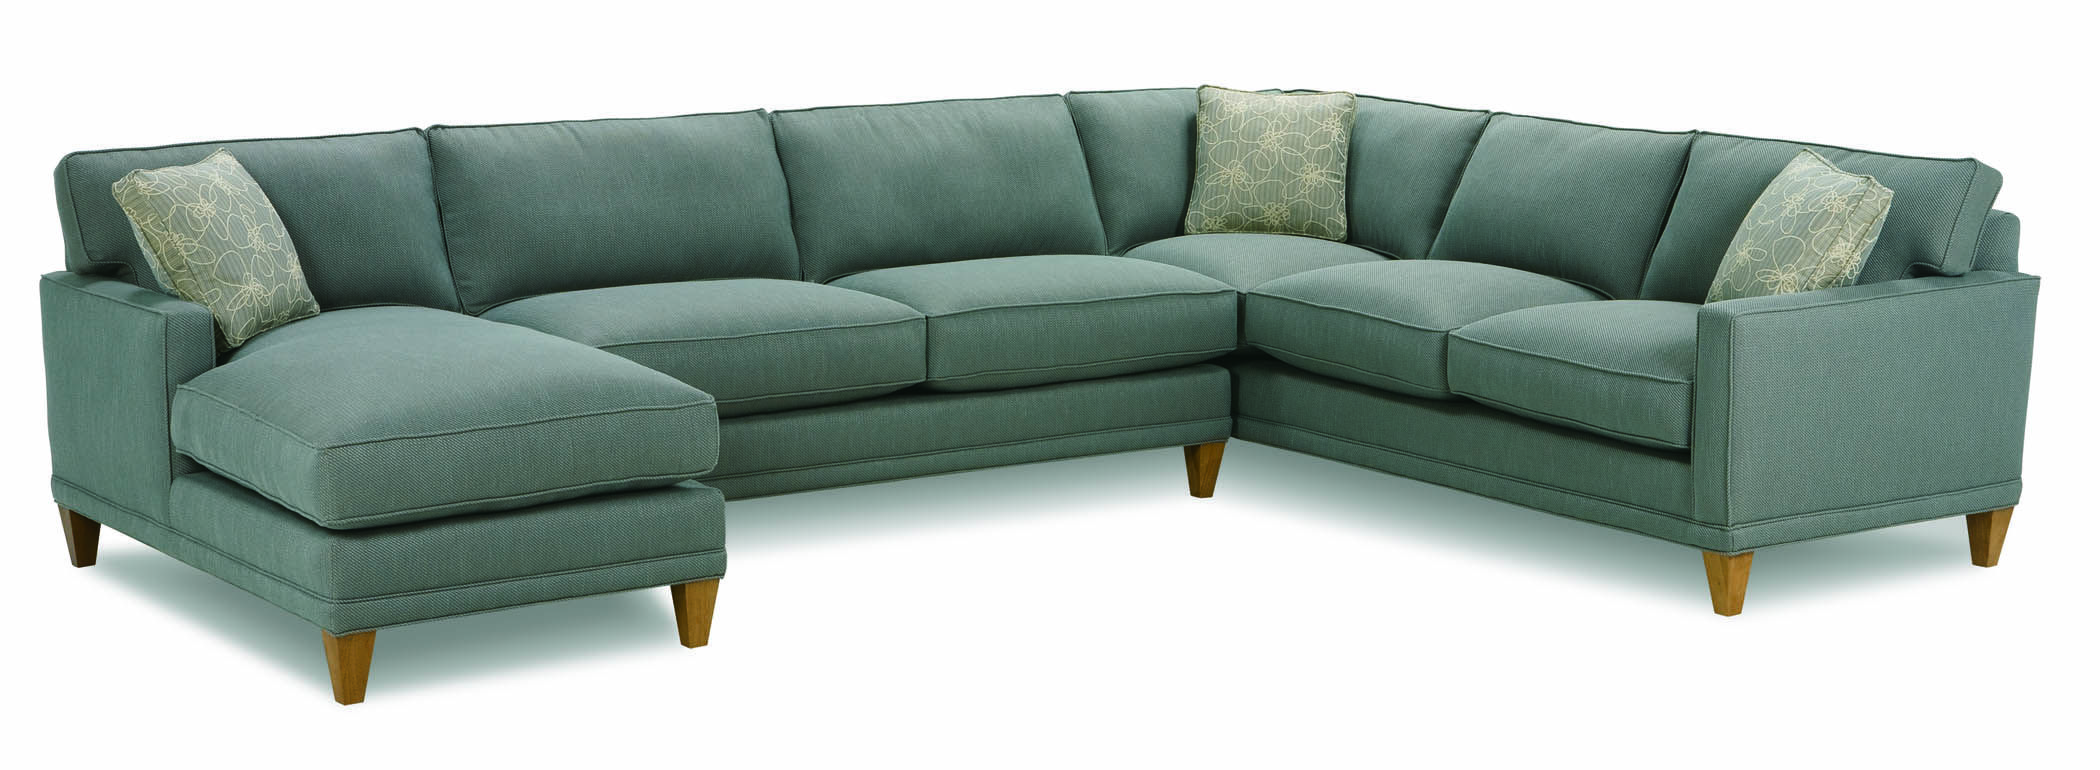 K621c Townsend Sectional From Rowe Furniture Www Rowefurniture Many Diffe Fabric Options